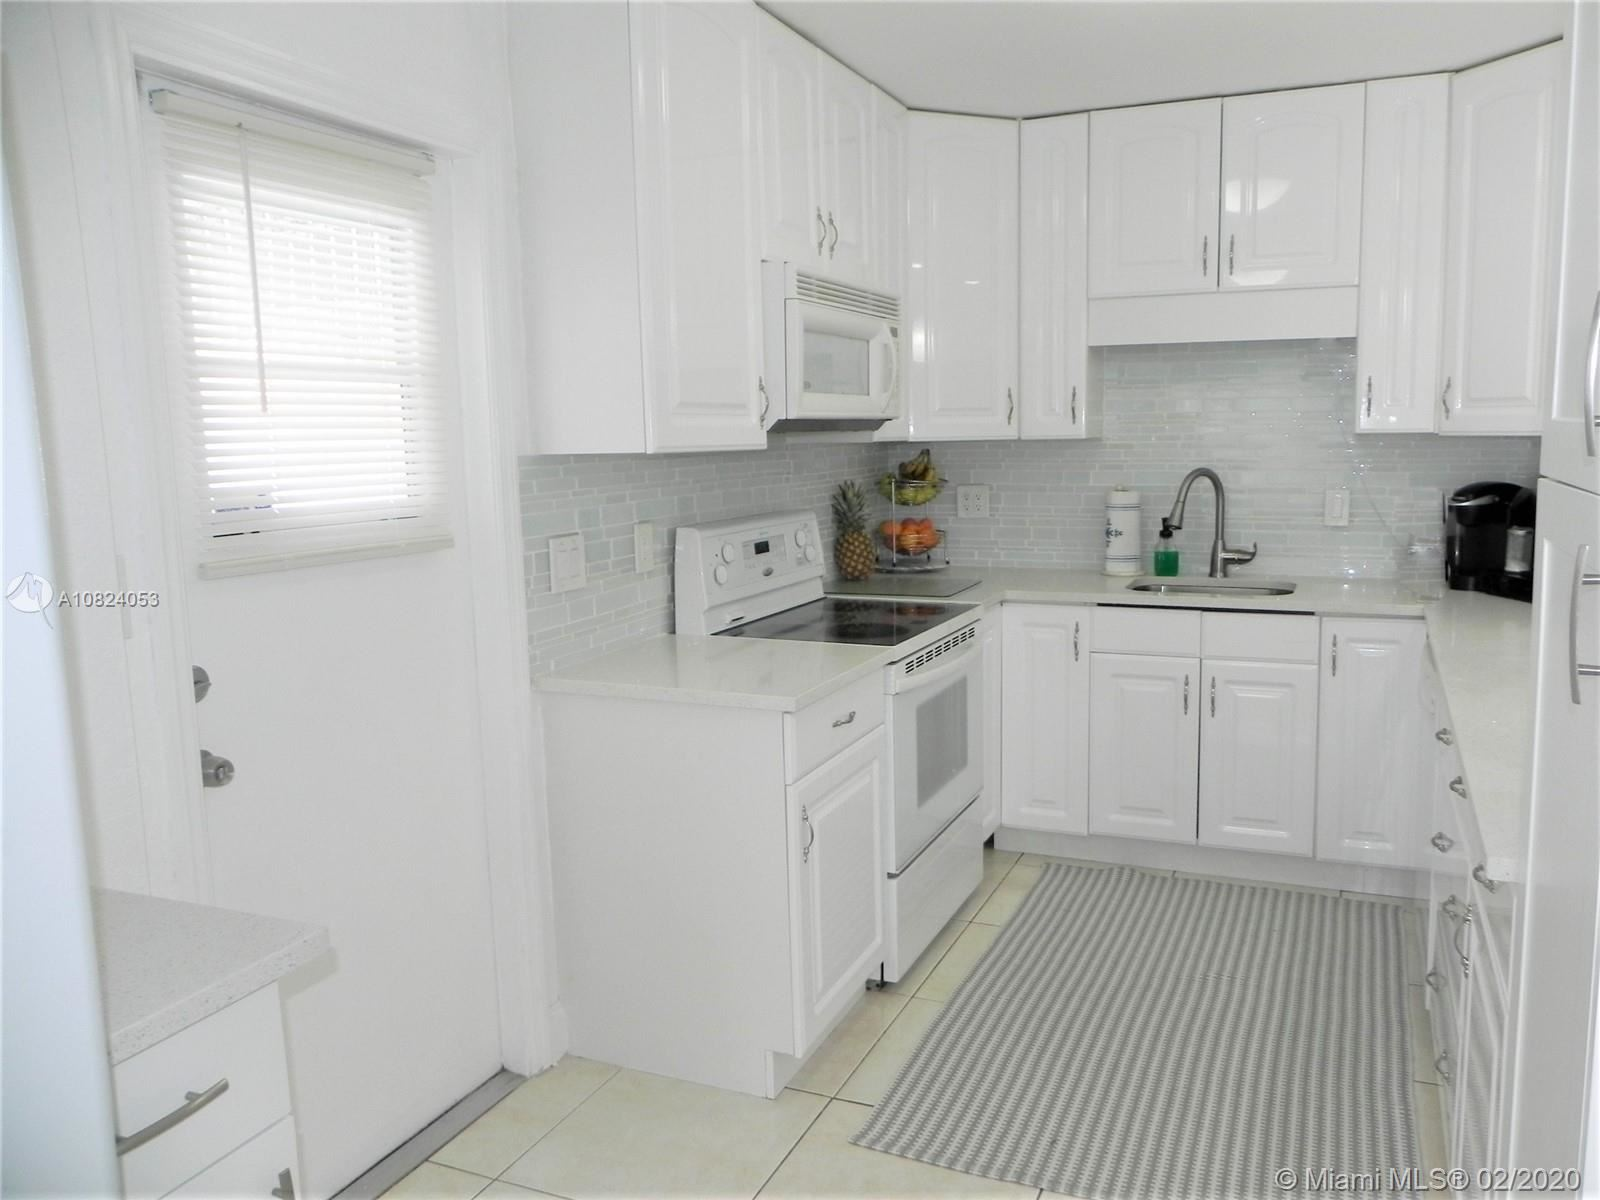 Photo 3 of Listing MLS a10824053 in 1531 Johnson St Hollywood FL 33020